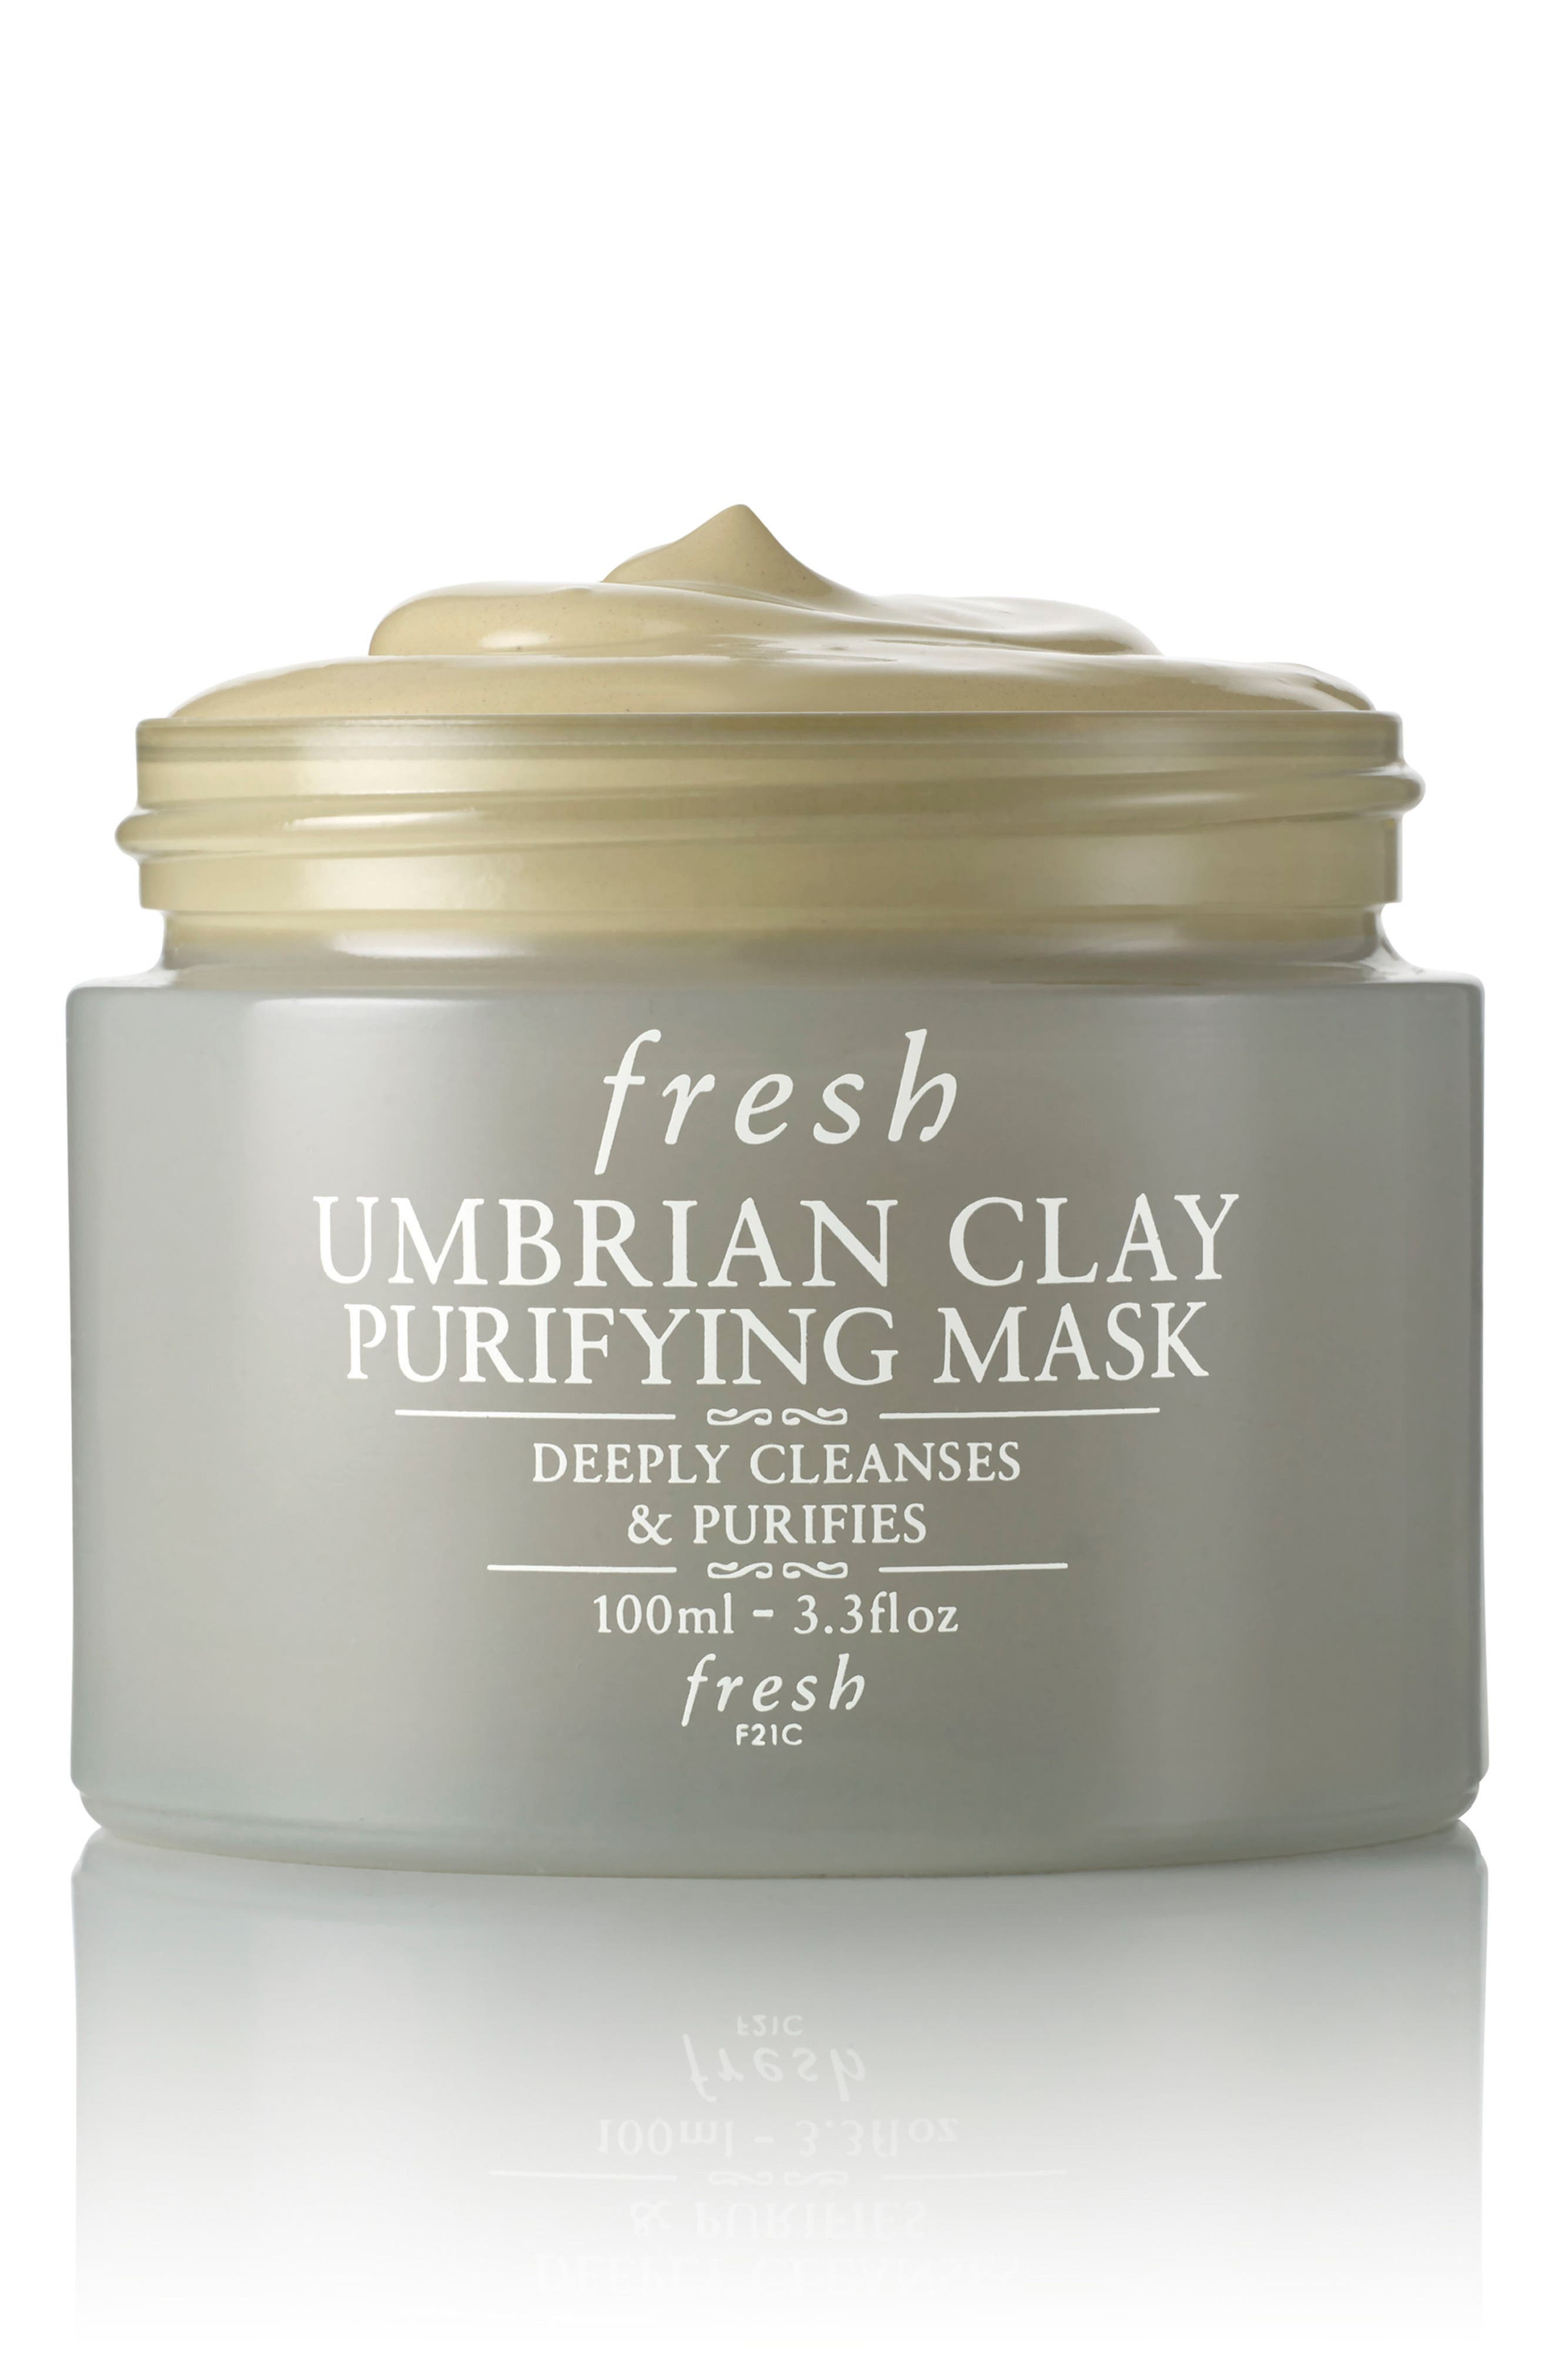 Fresh® Umbrian Clay Purifying Mask